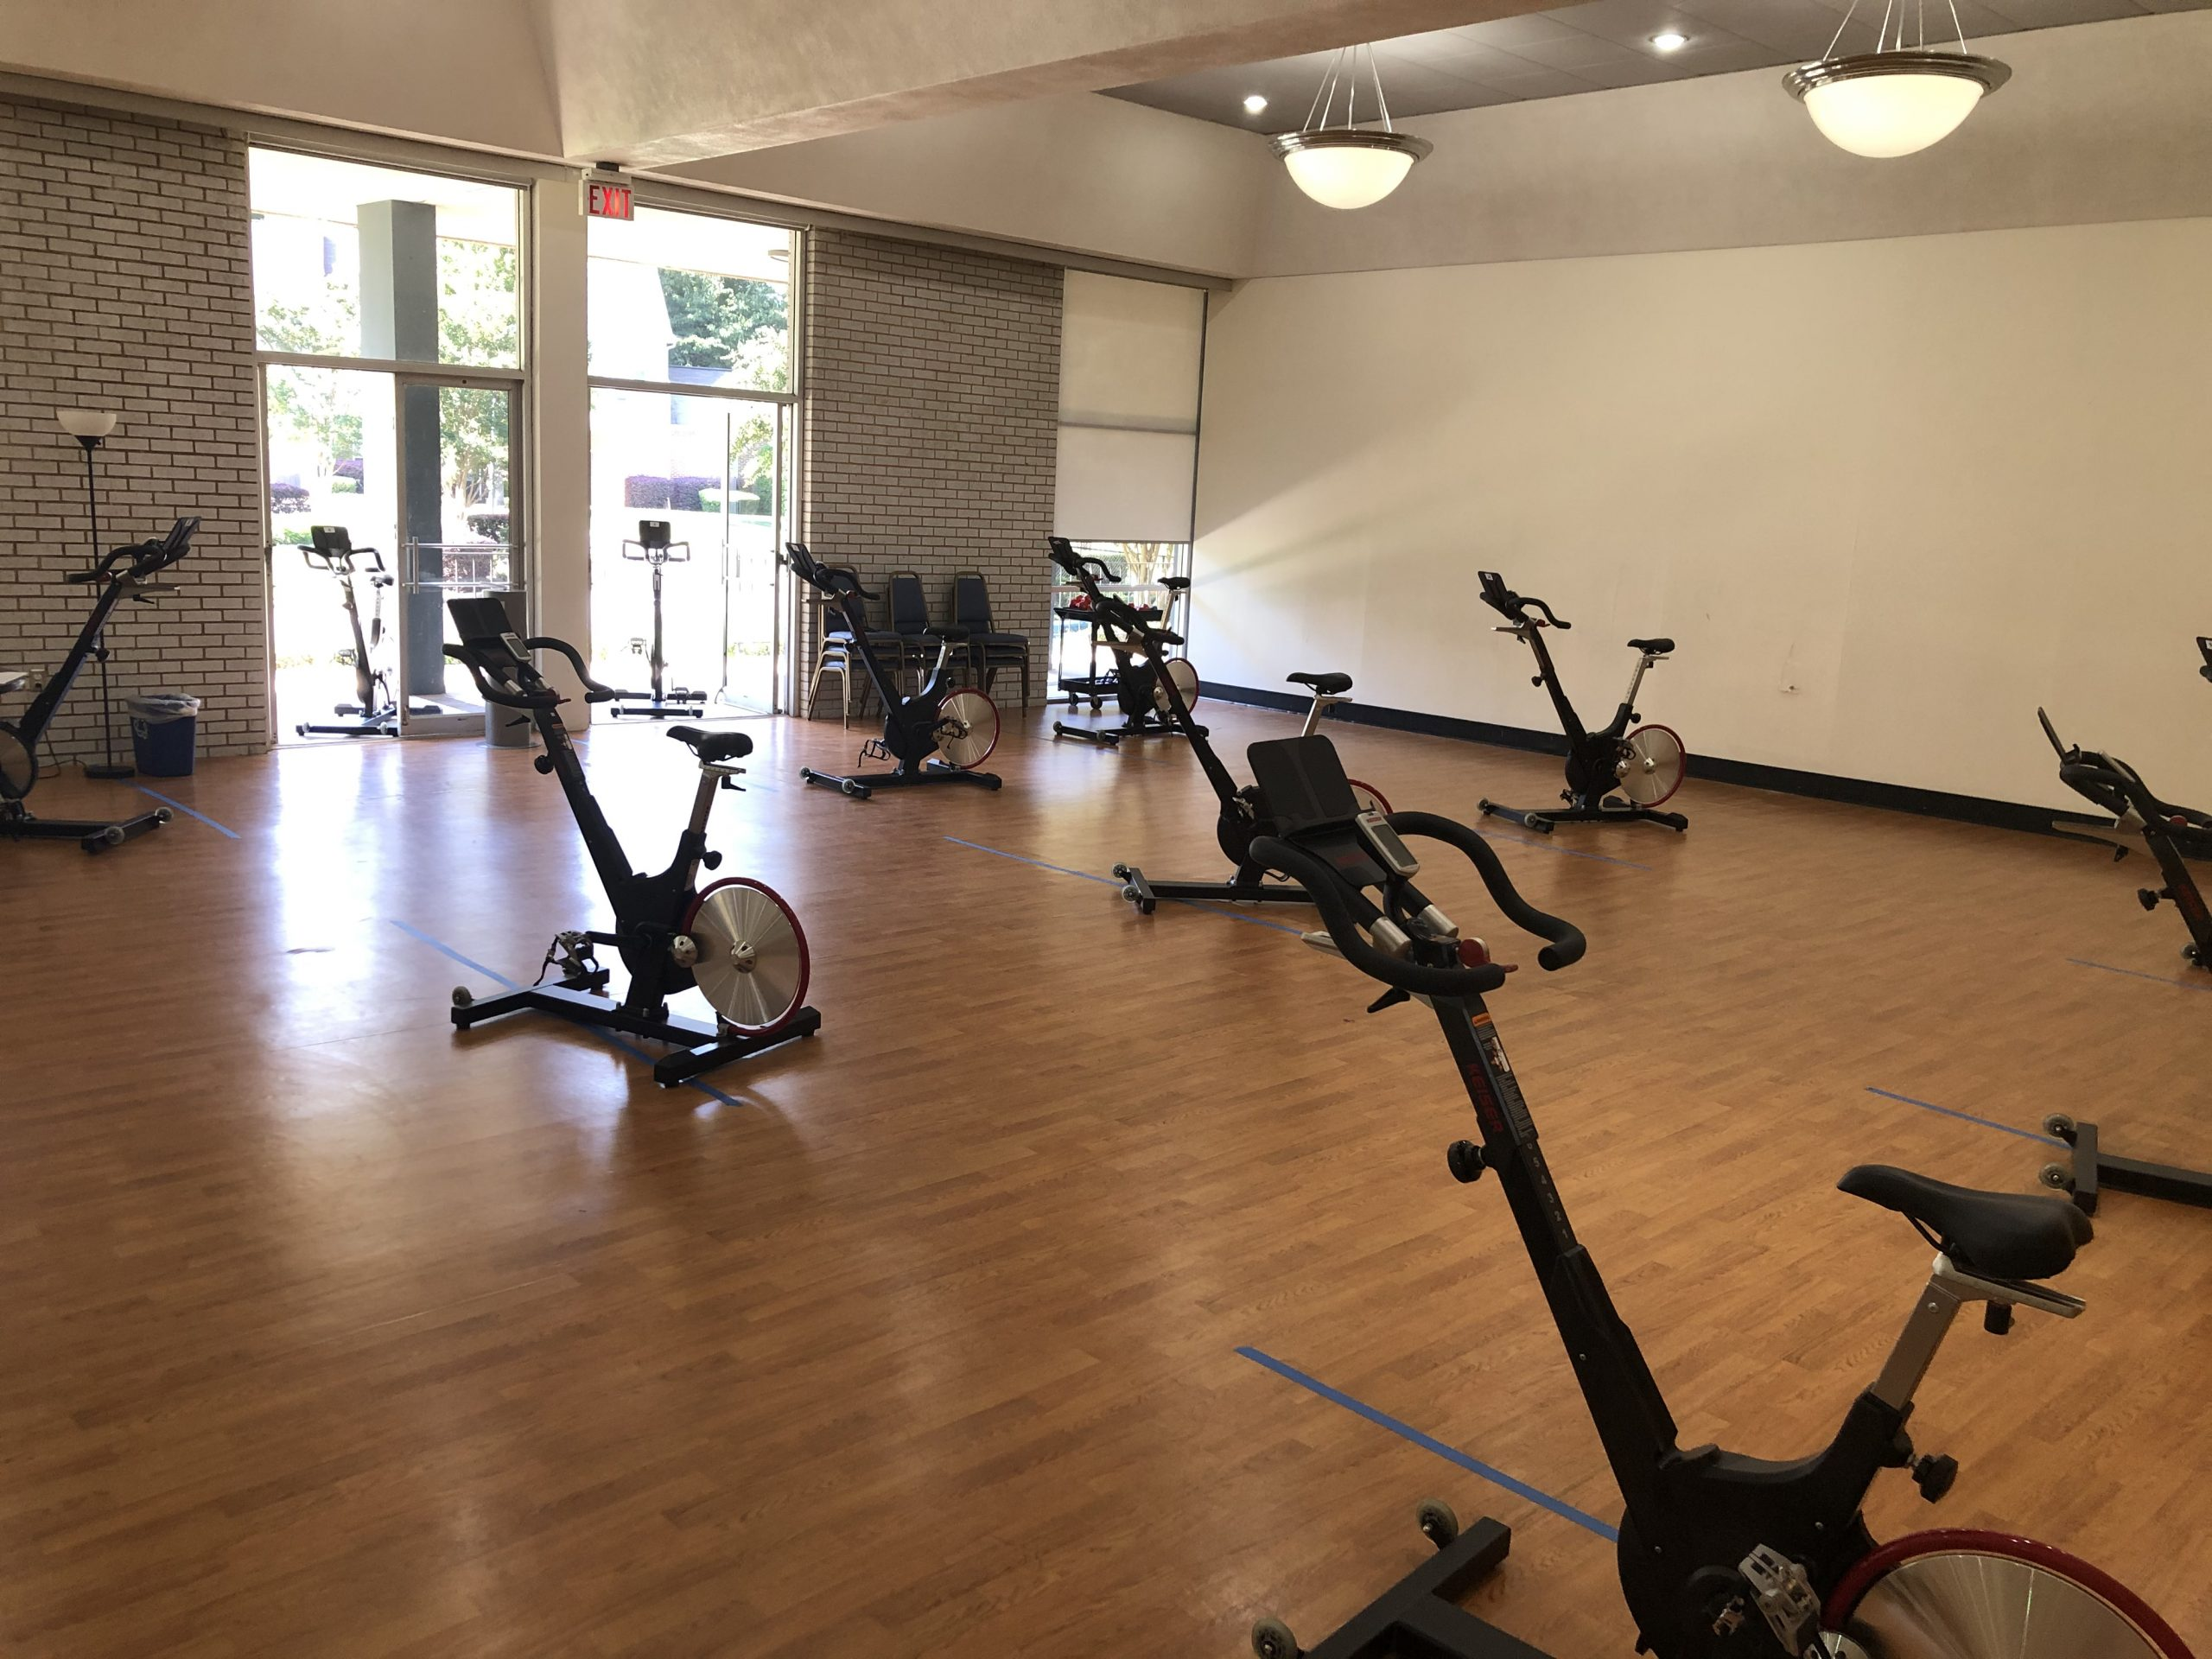 COVID19, social distancing, fitness center, YWCA, gym, co-ed gym, workout, cycle class